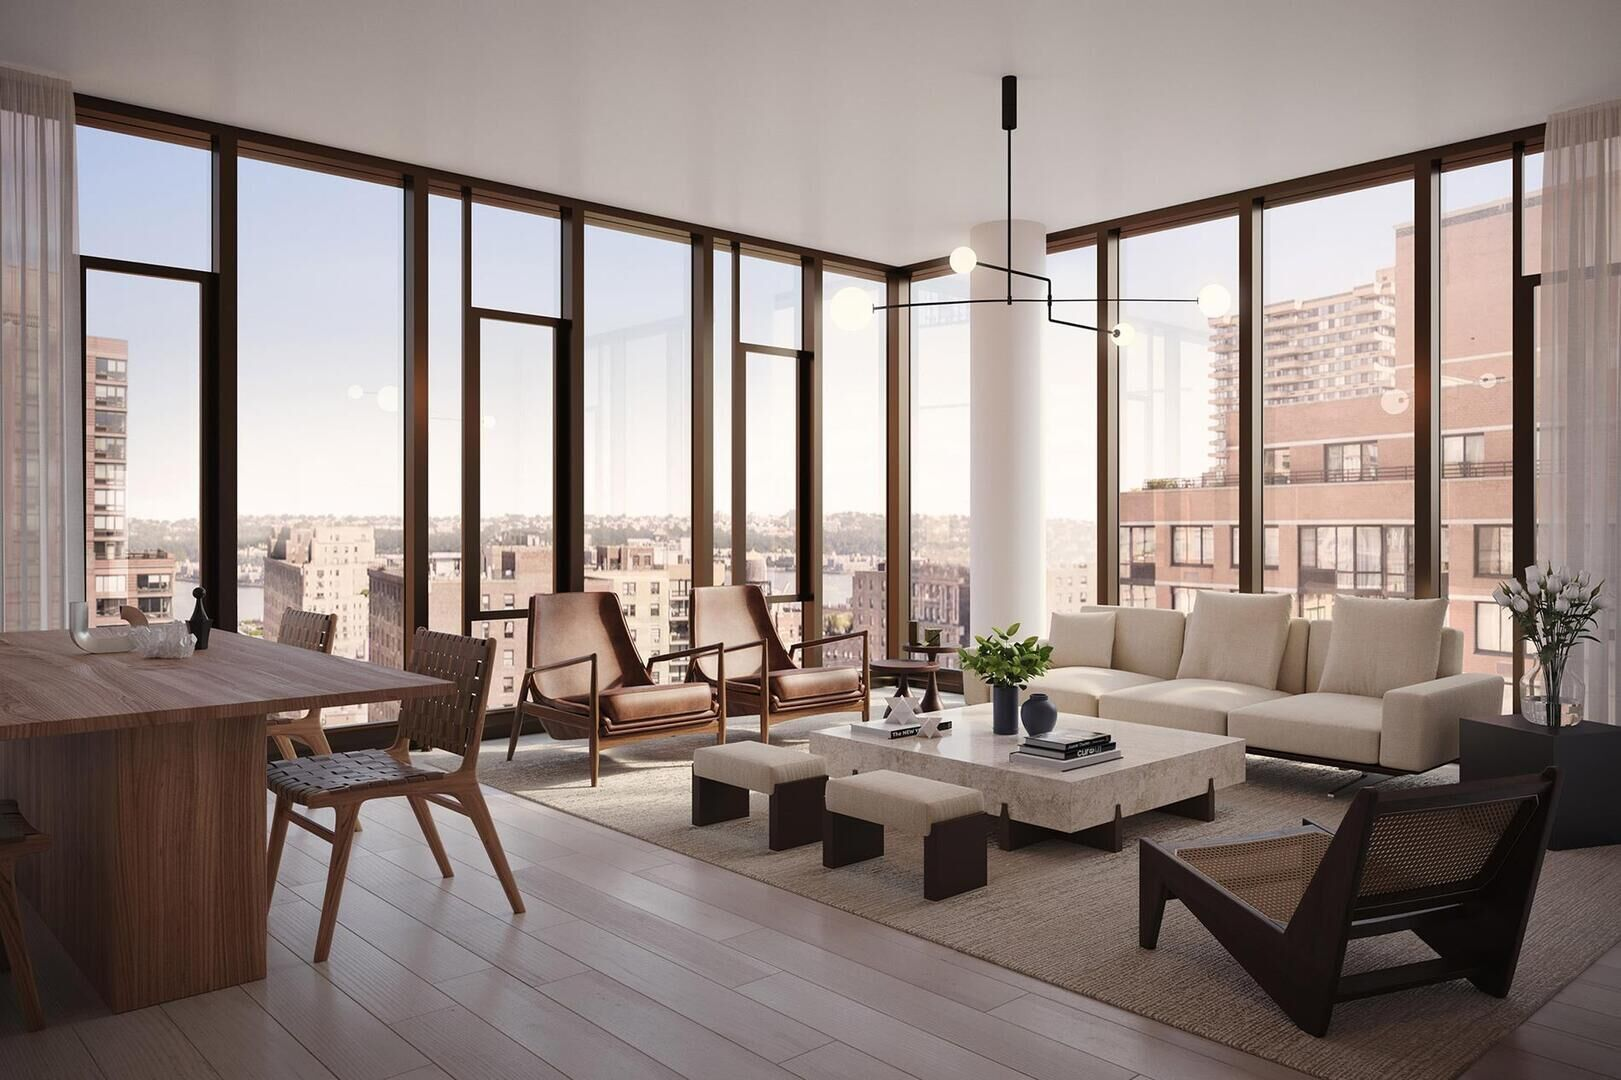 Apartment for sale at 212 West 95th Street, Apt 17-B